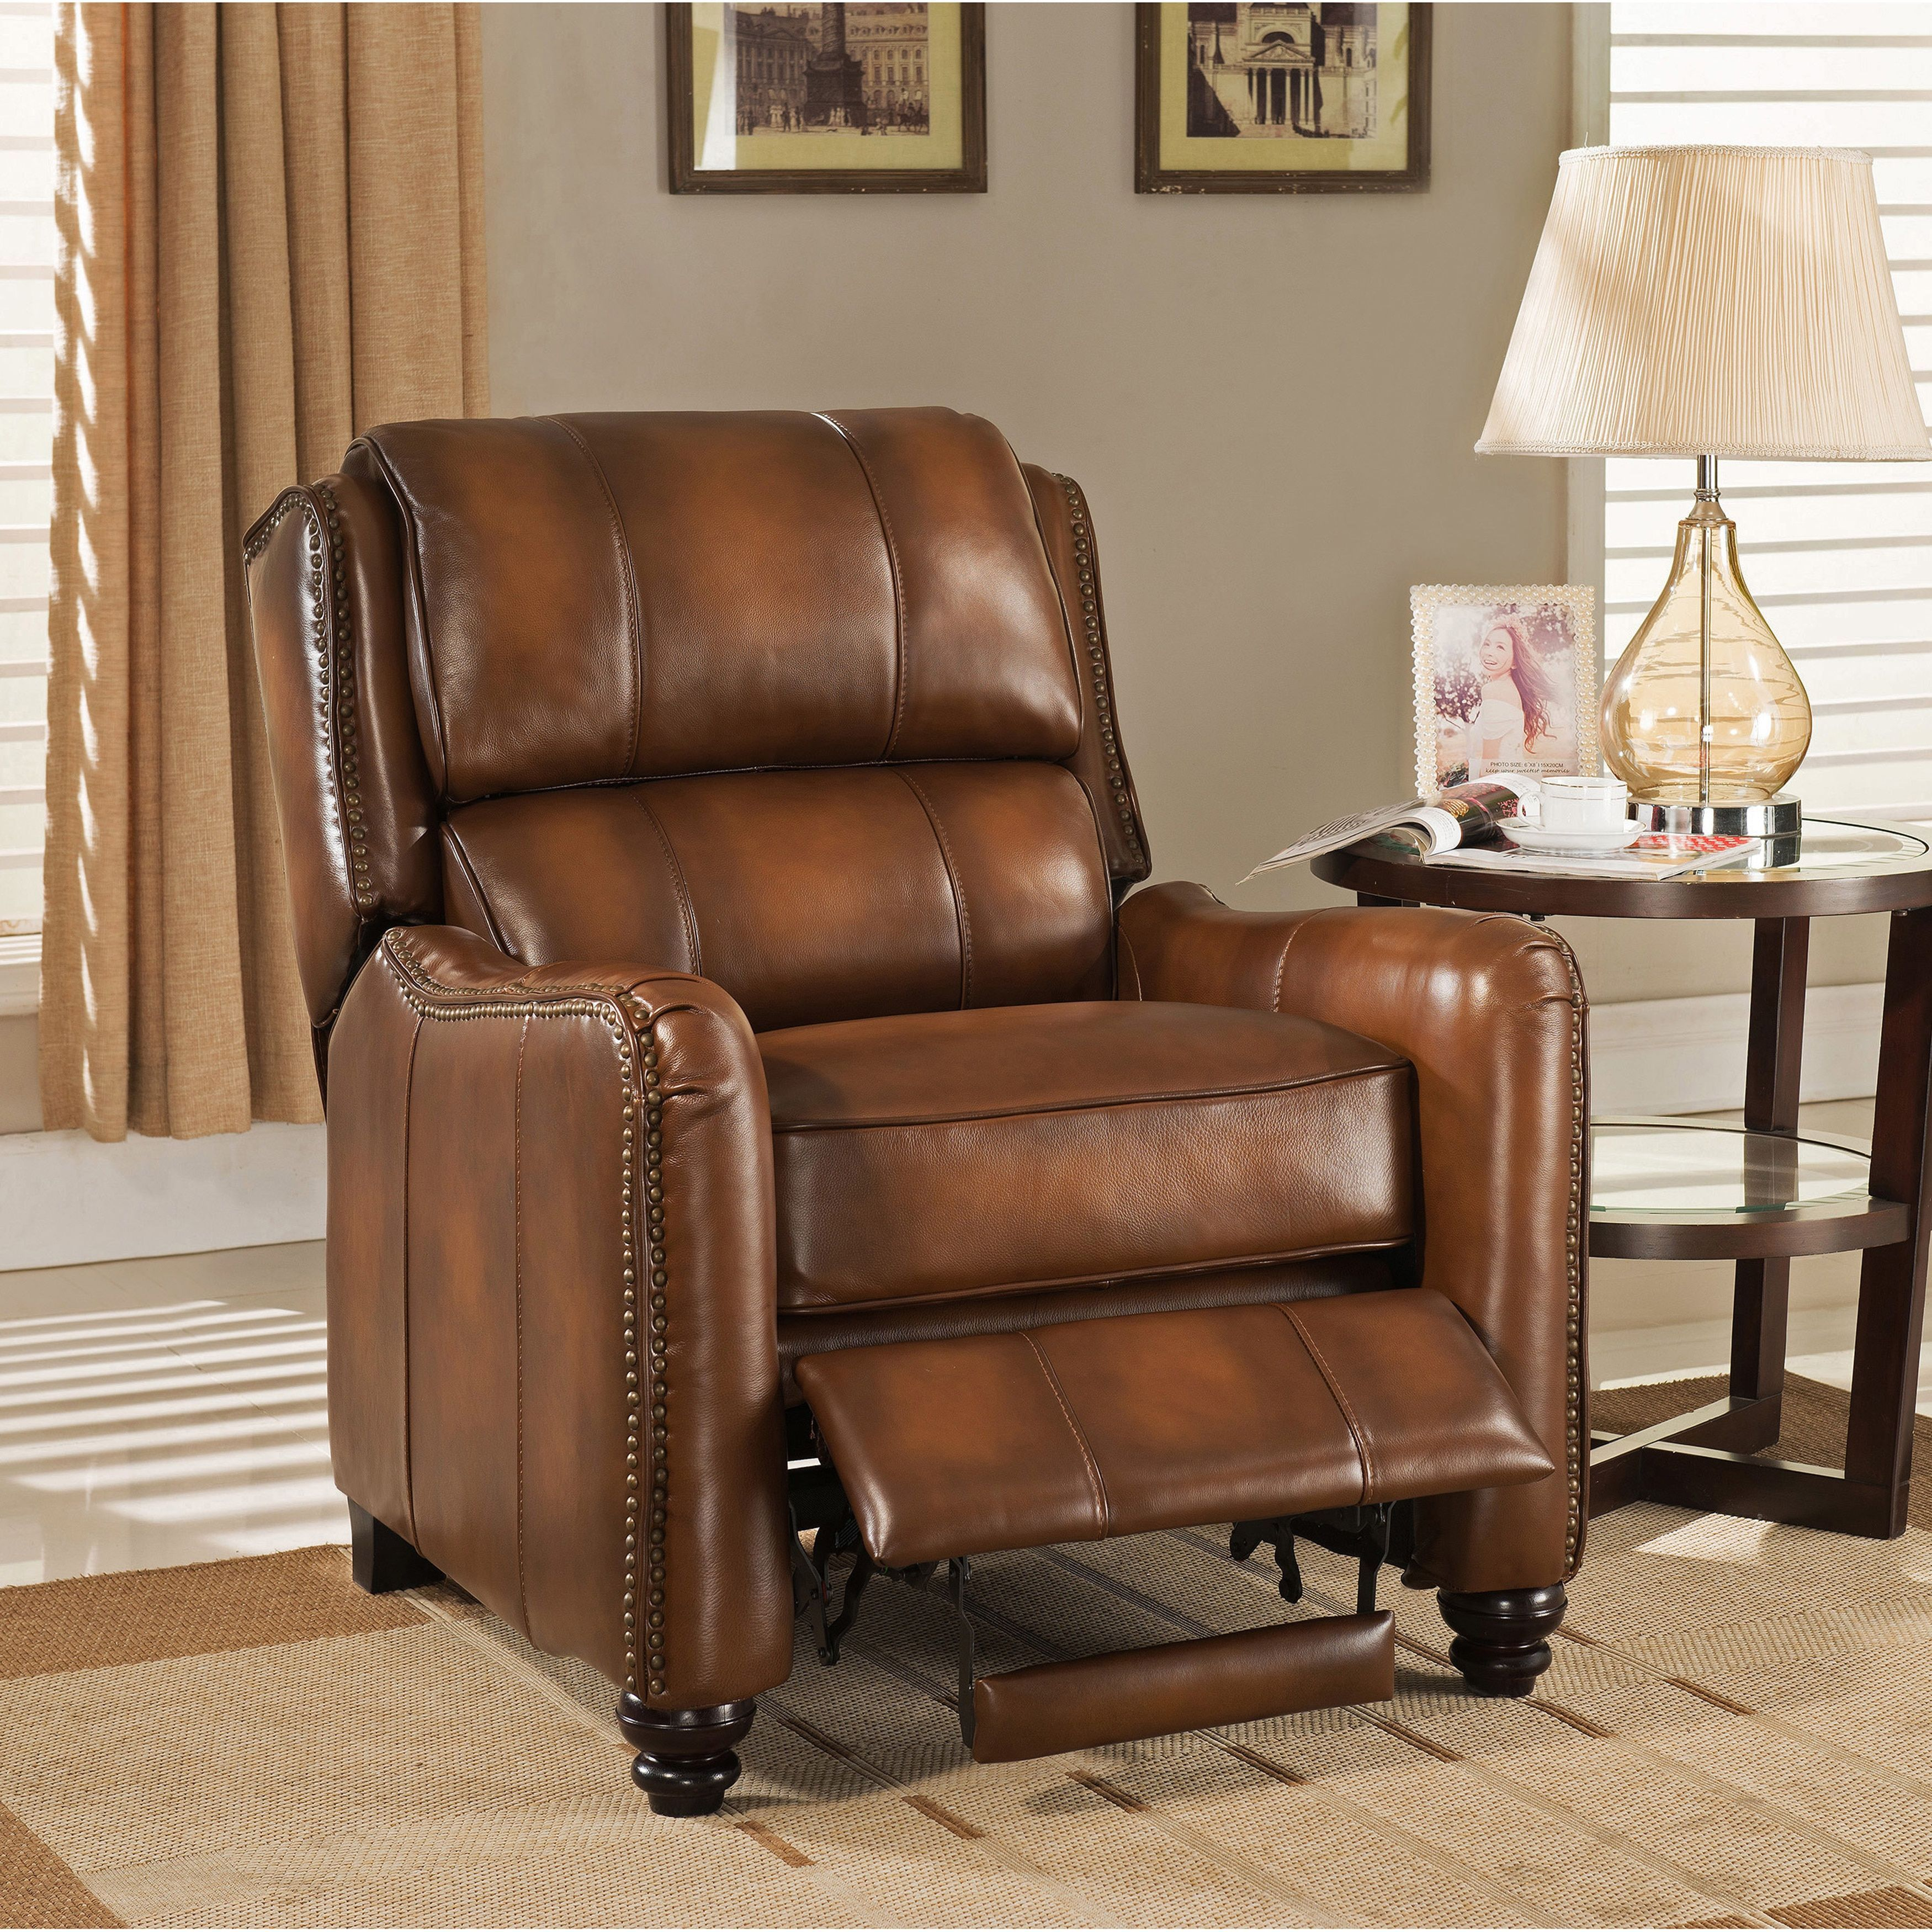 Outstanding Lowry Vintage Brown Premium Top Grain Leather Recliner Chair Bralicious Painted Fabric Chair Ideas Braliciousco